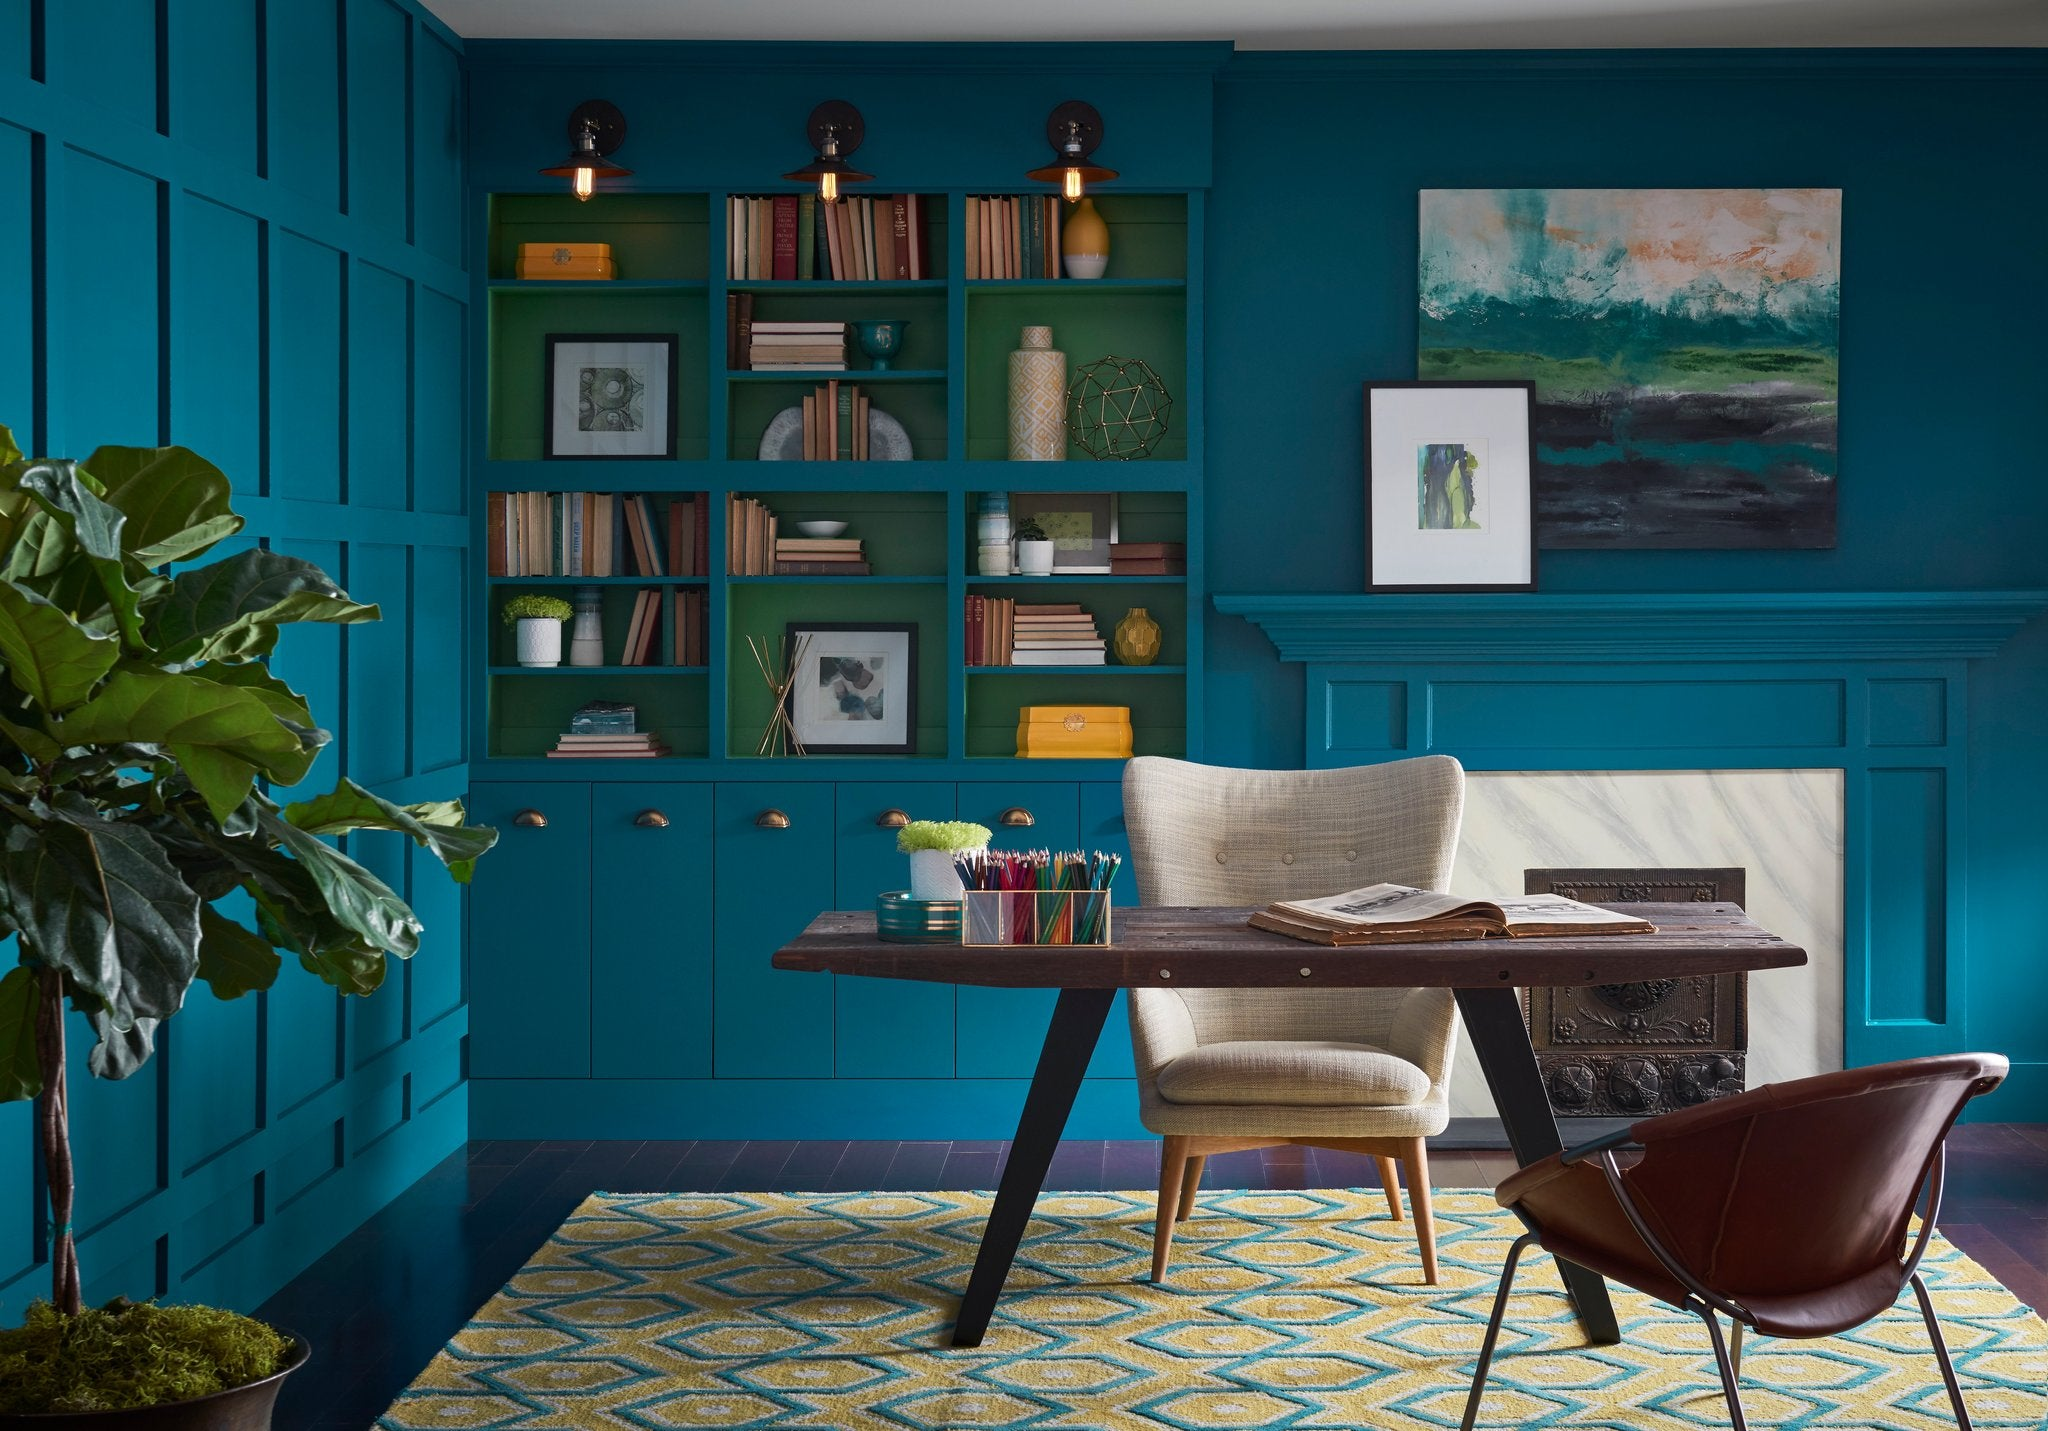 Sherwin Williams Colour of the Year 2018 | Colour Trends 2018